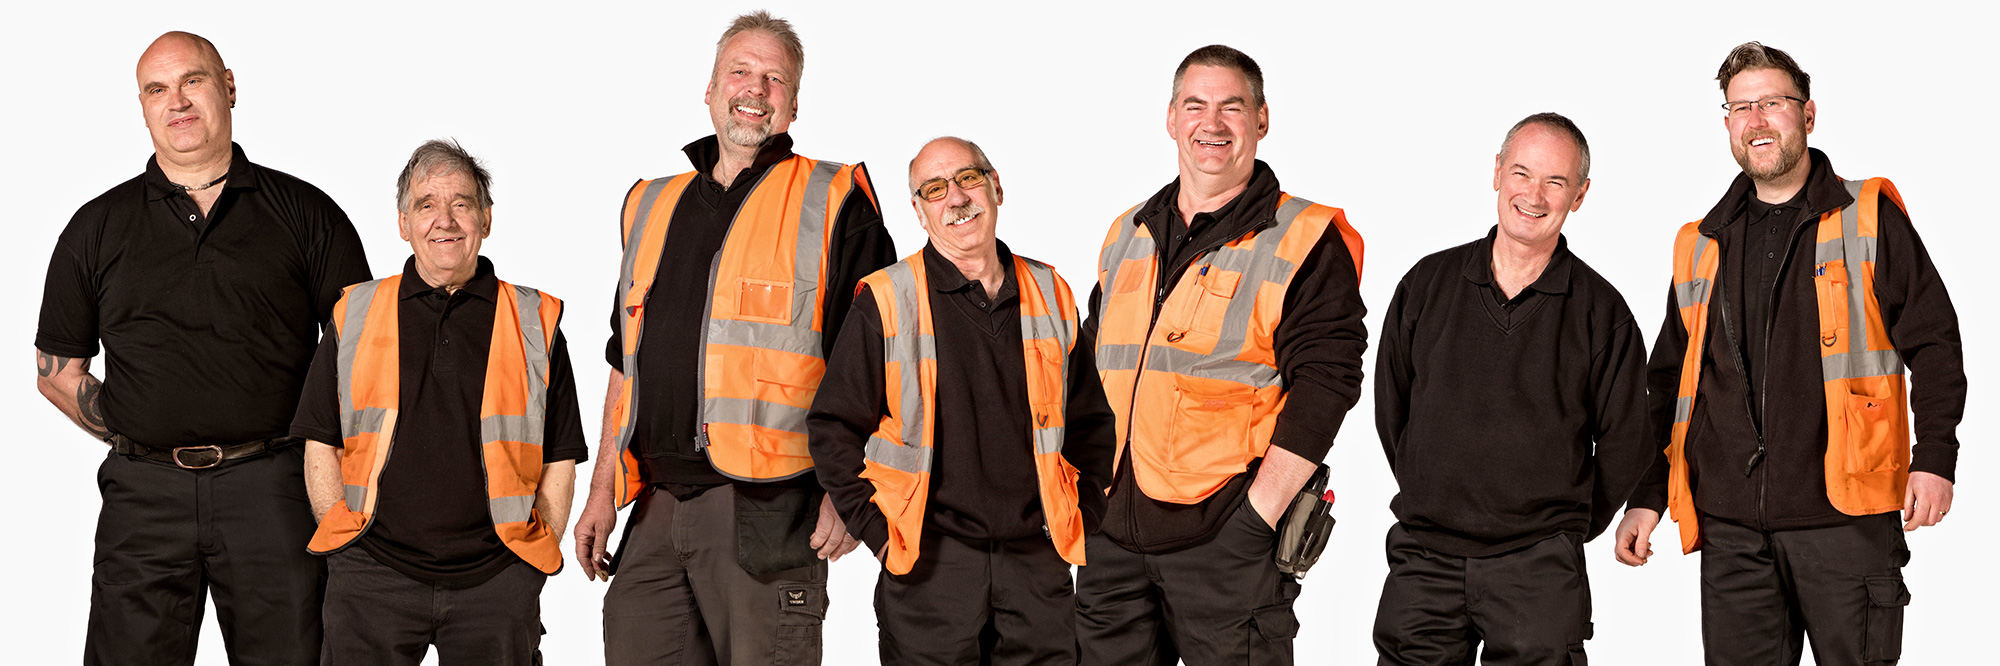 Group of warehouse workers on a white background wearing hi-vis jackets.